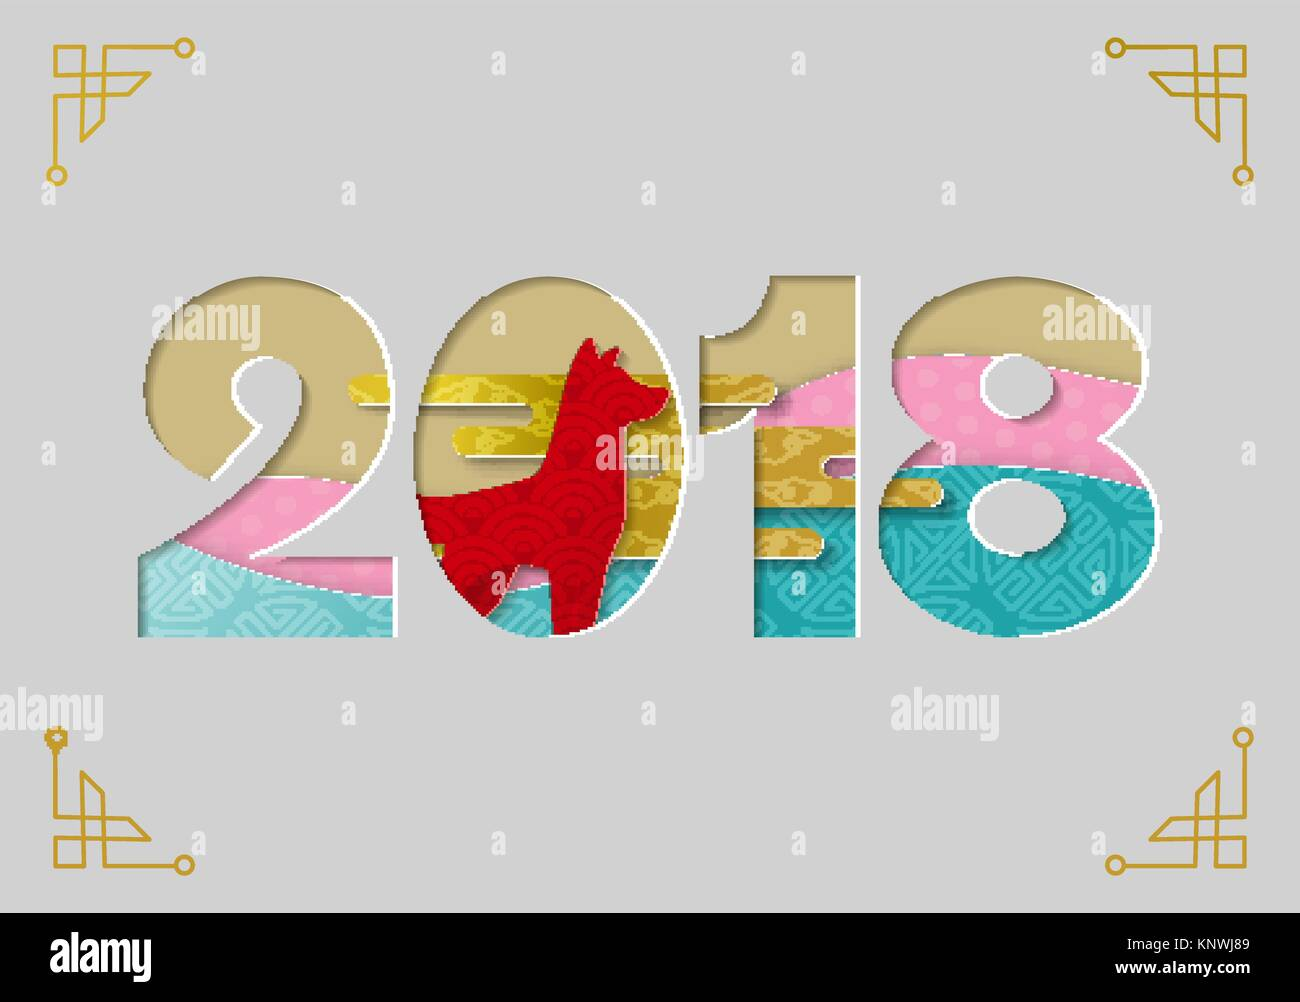 Happy Chinese New Year 2018 Greeting Card Cutout Illustration